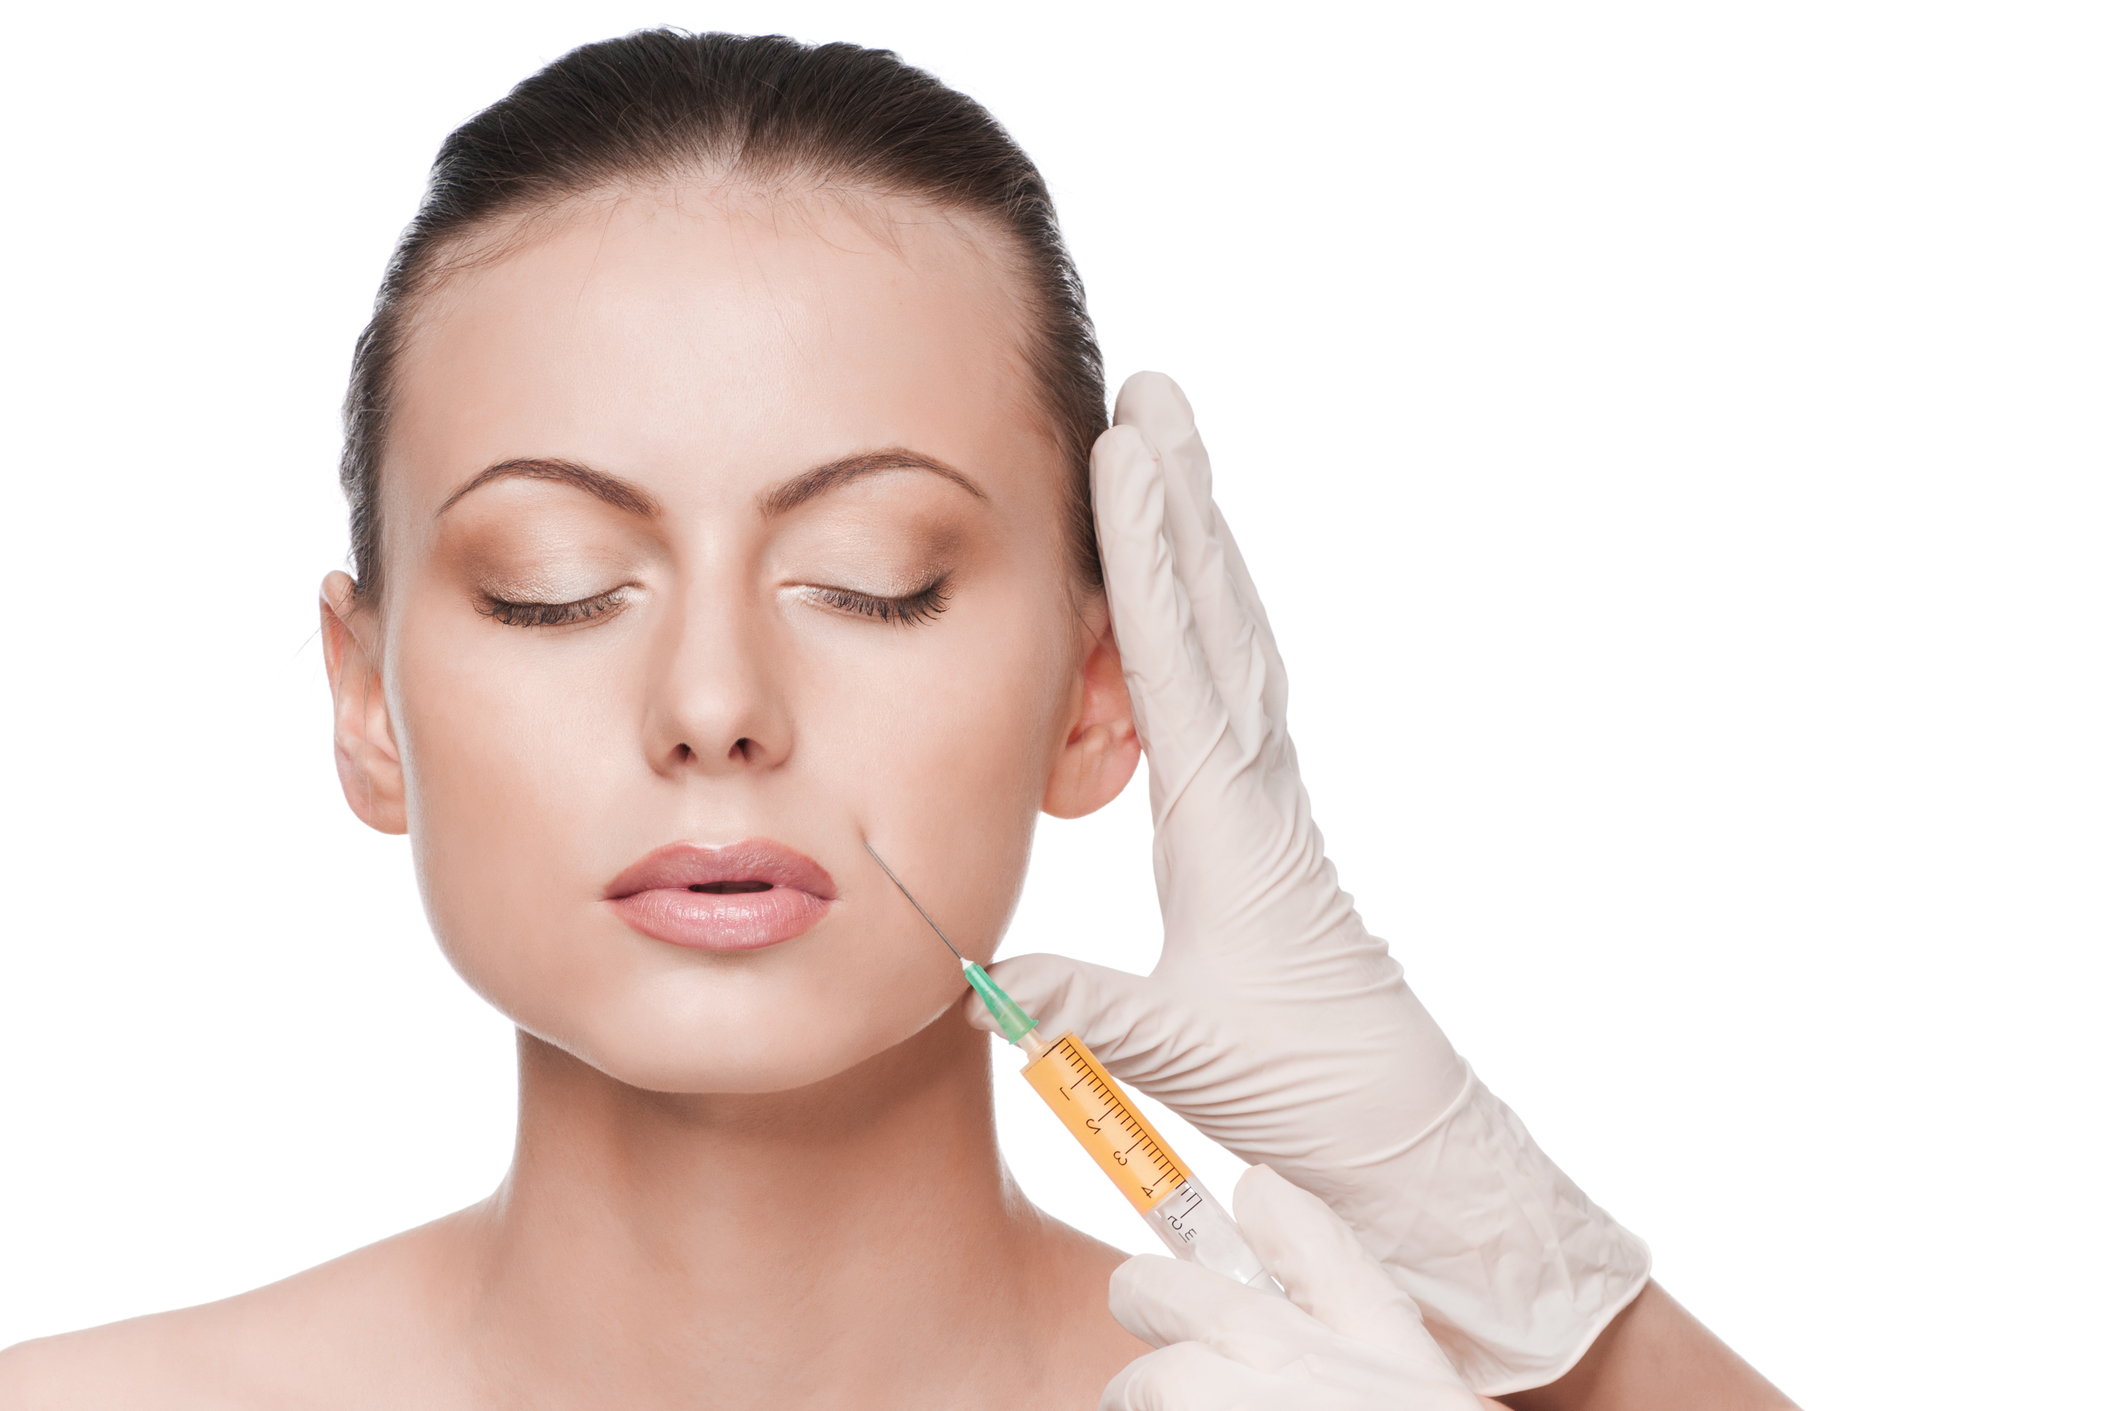 cosmetic-botox-injection-in-the-beauty-face-20785710.jpg